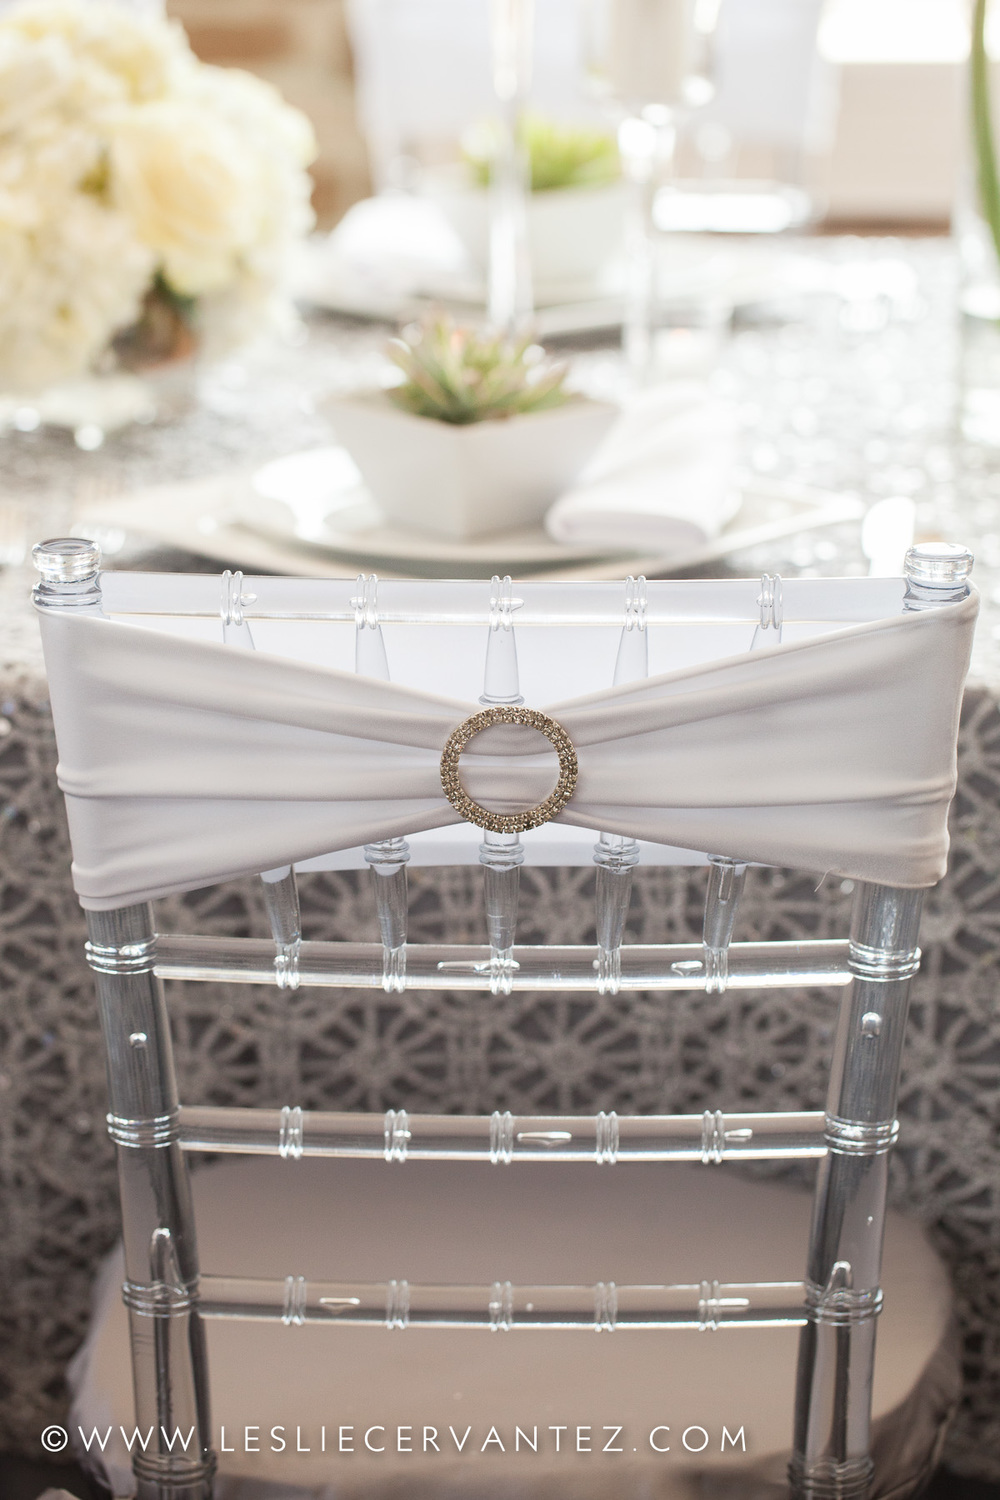 Chairs provided by Flora & Eventi; chair ties provided by Over the Top Linen